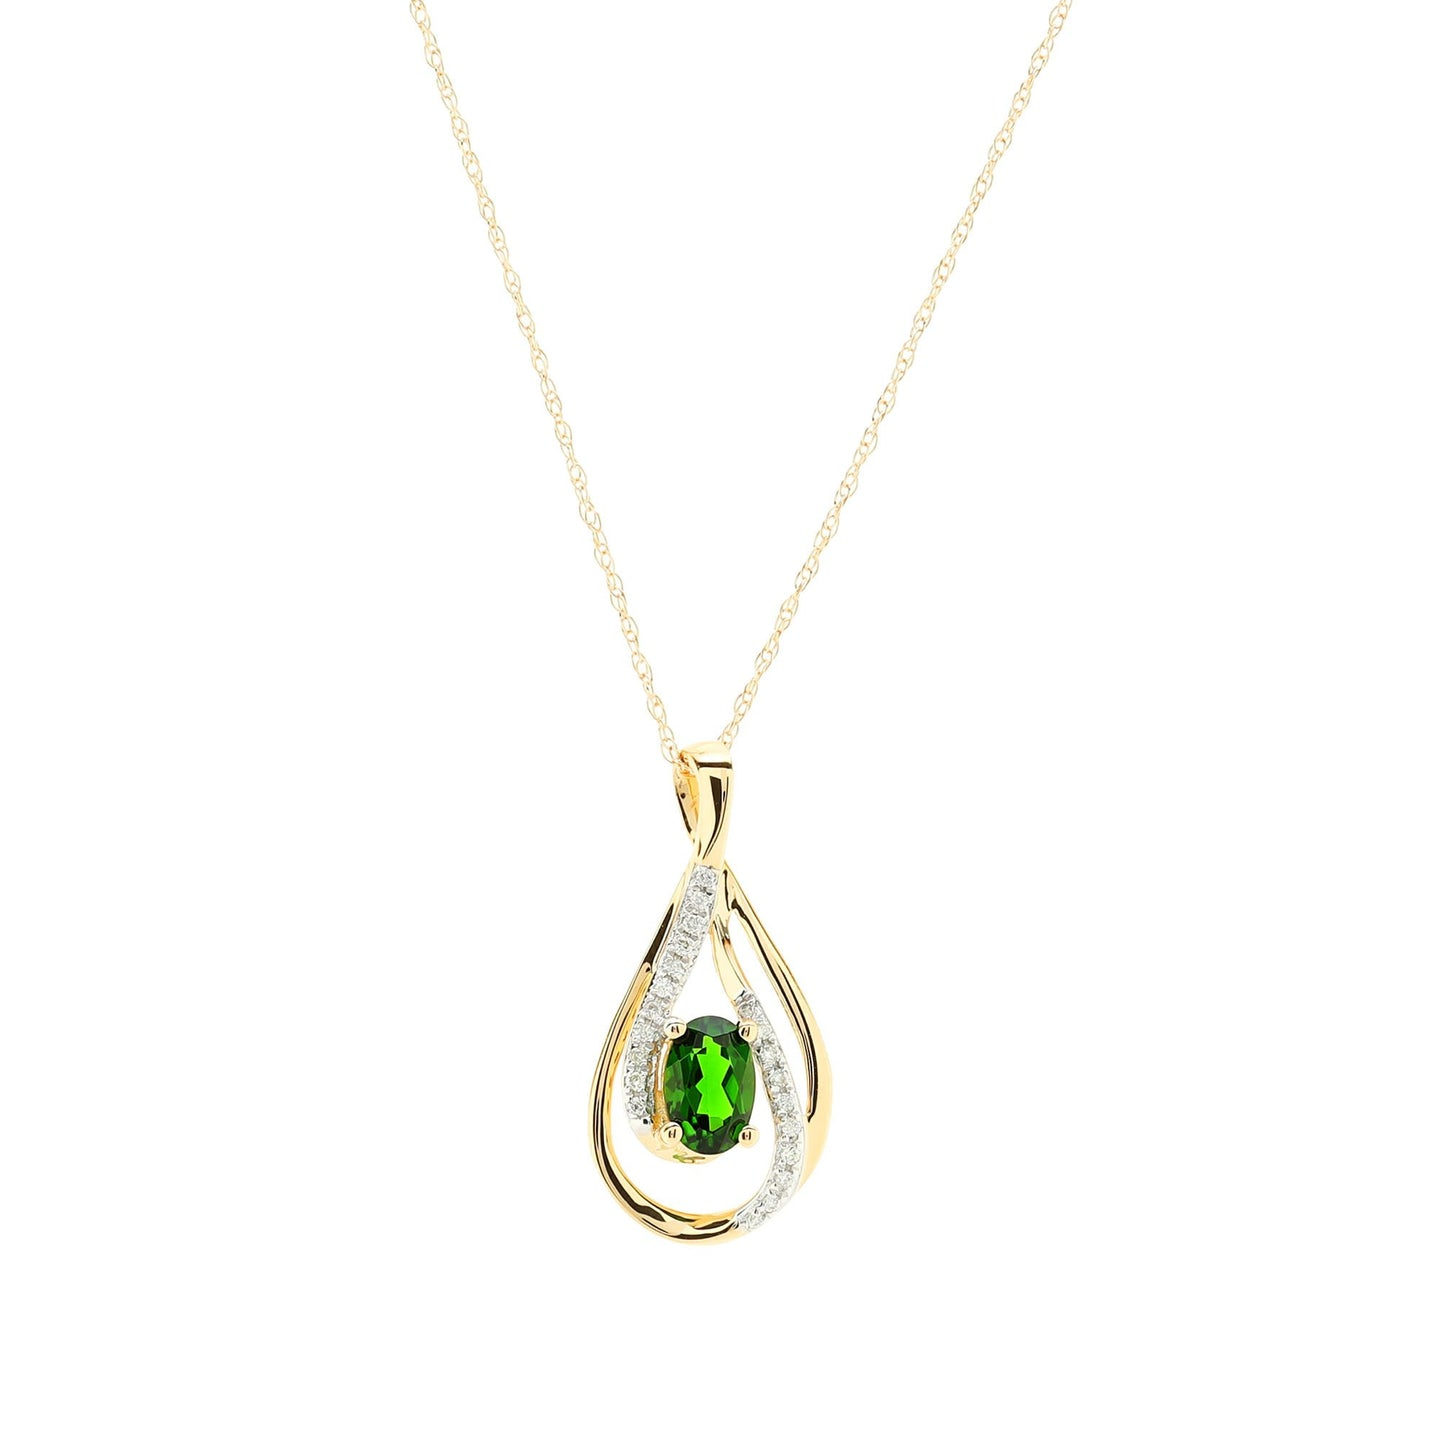 Sabel Collection 14K Yellow Gold Oval Russalite and Diamond Pear Shape Necklace